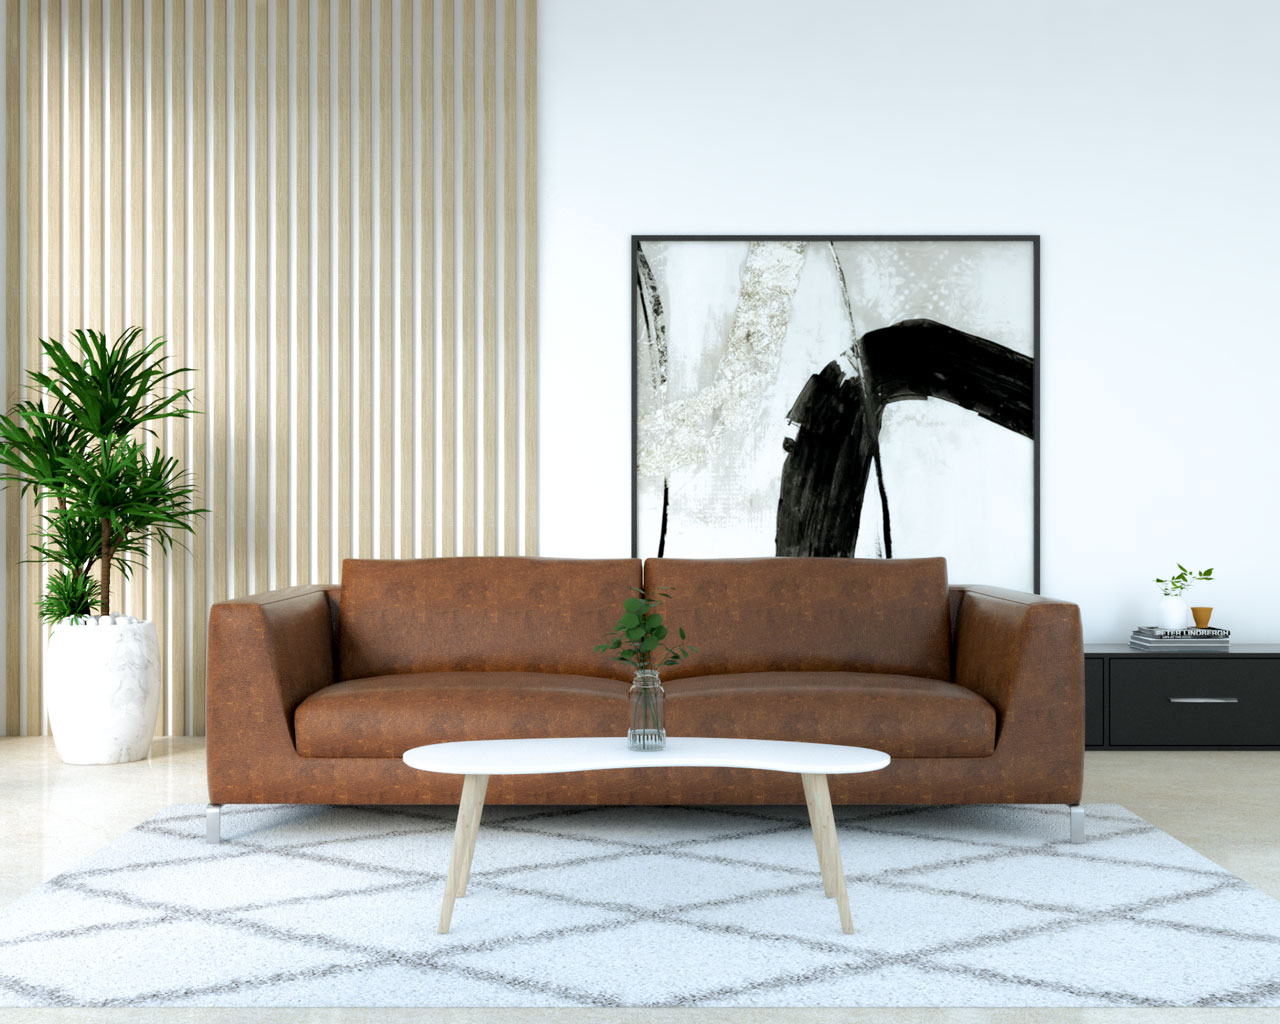 Bean-shaped coffee table with brown sofa